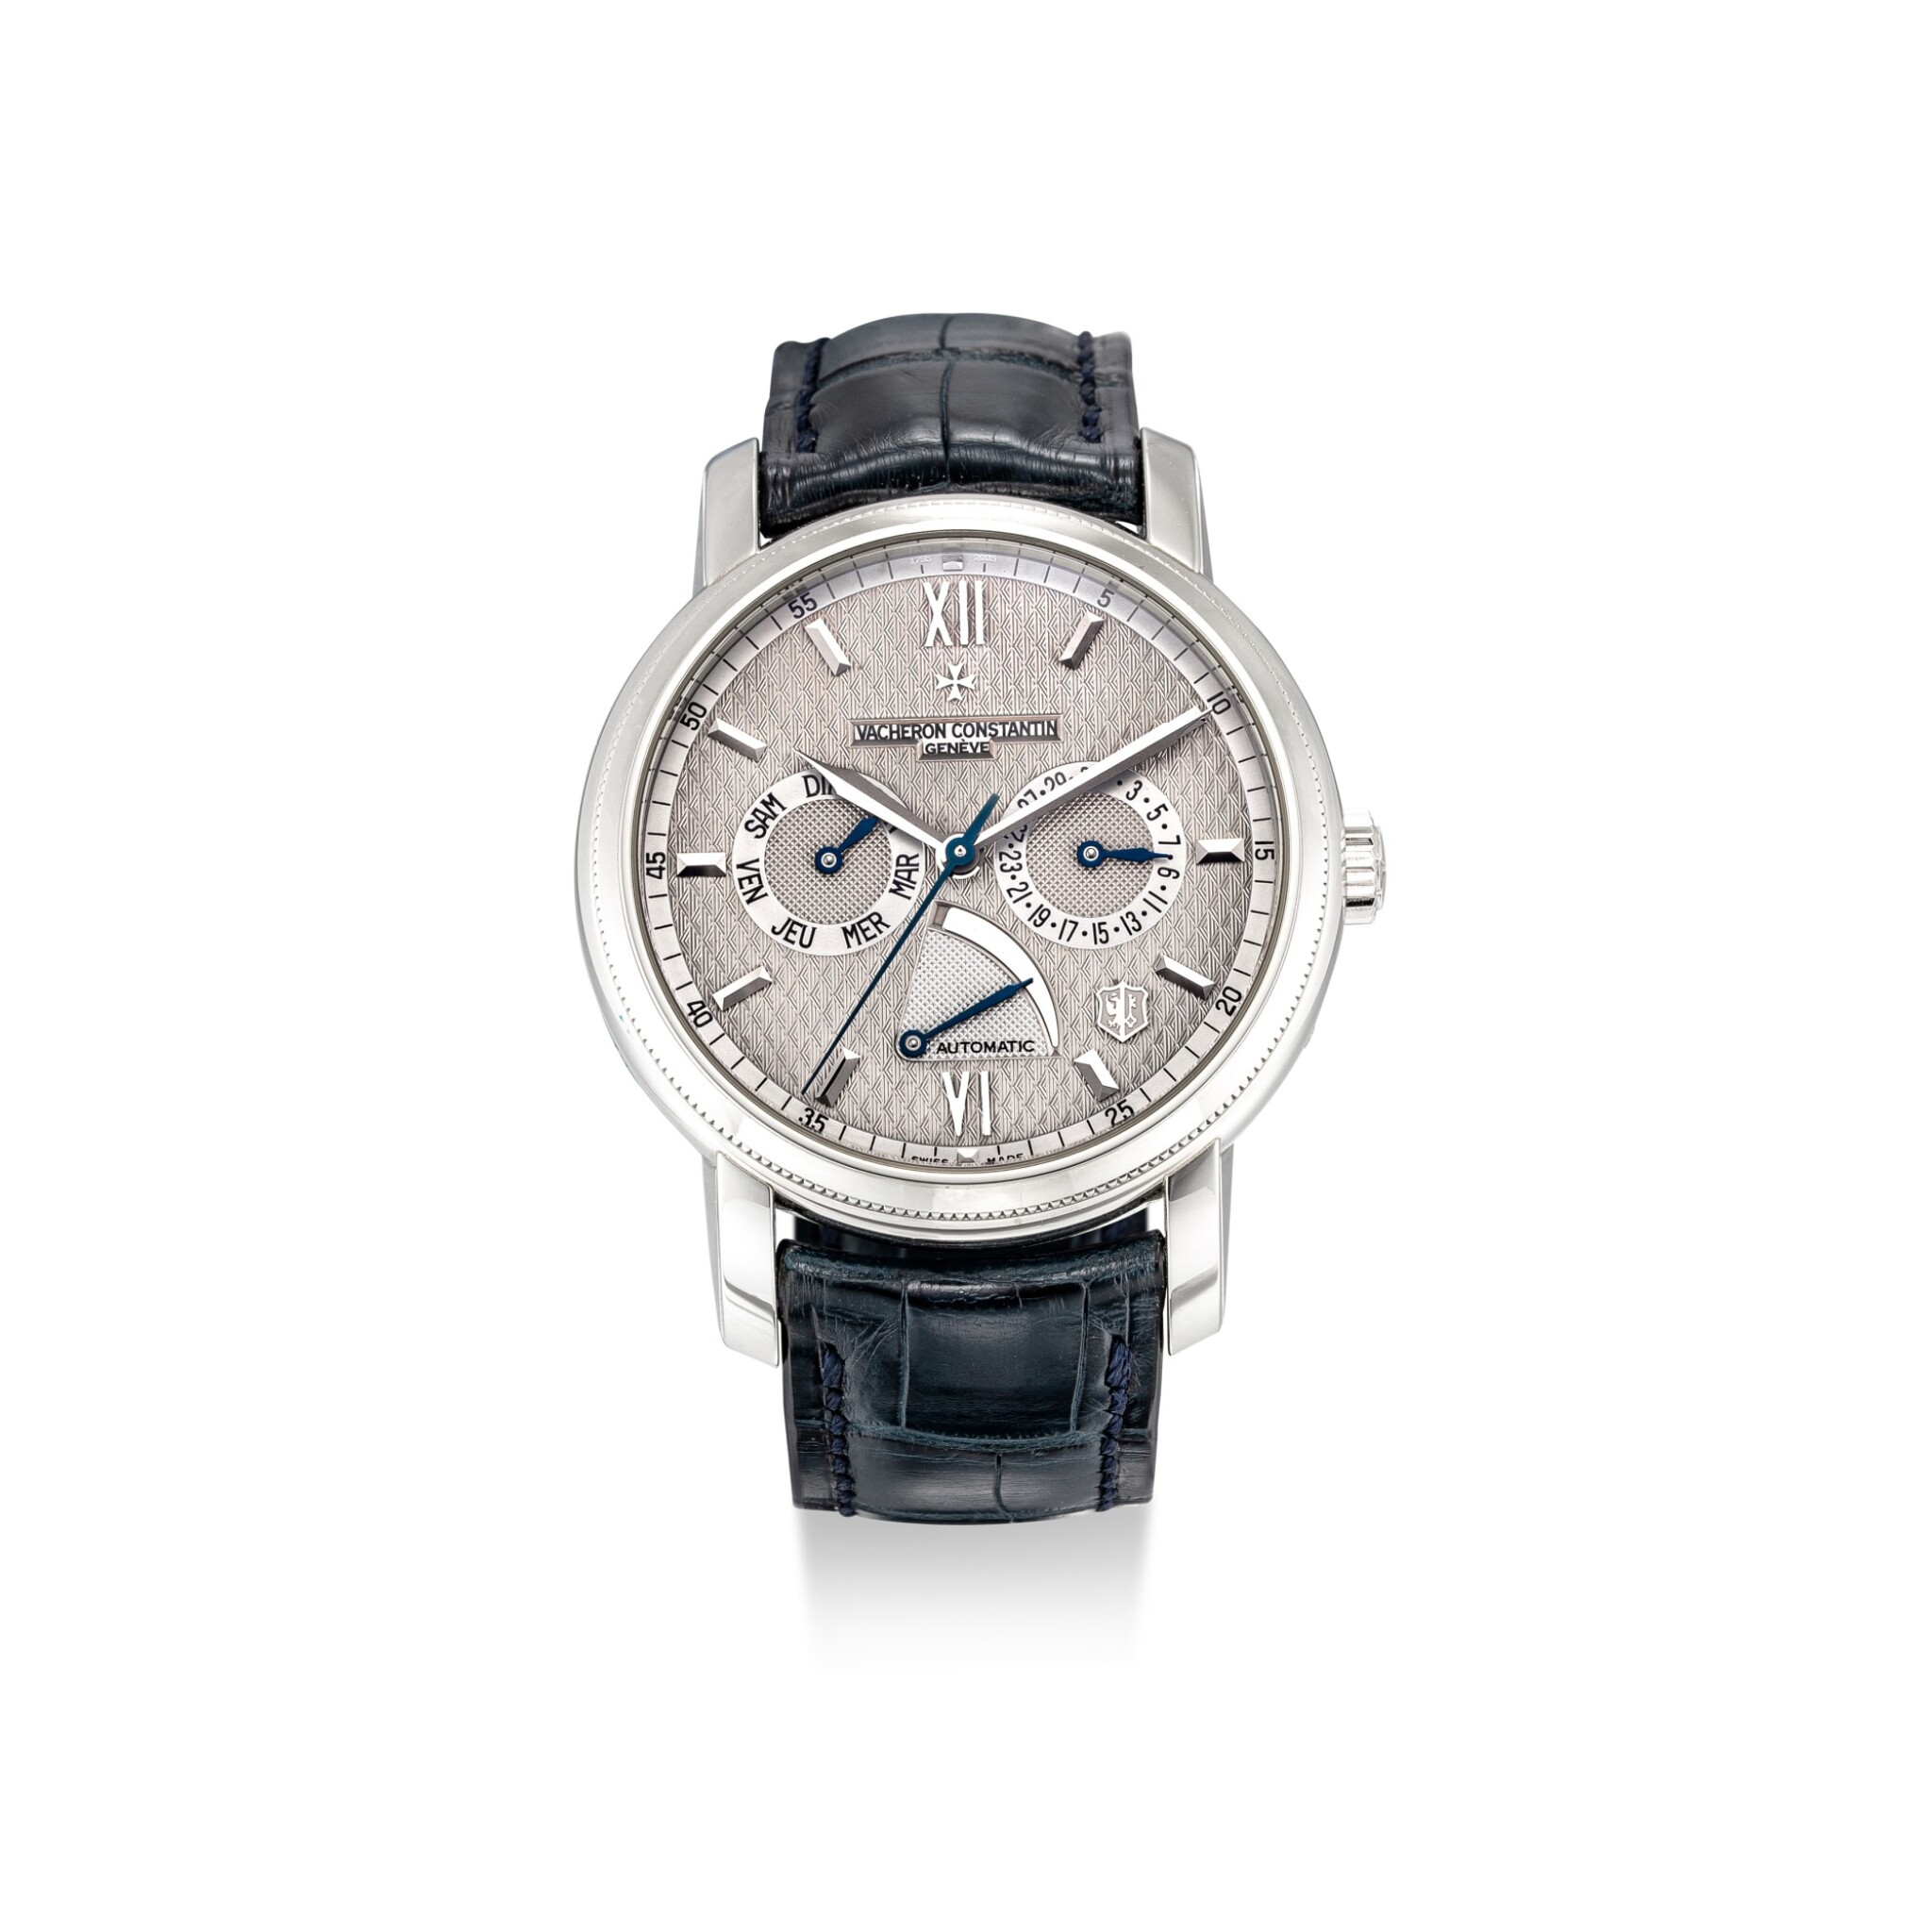 View full screen - View 1 of Lot 101. VACHERON CONSTANTIN | JUBILEE 1755, REFERENCE 85250 A LIMITED EDITION PLATINUM WRISTWATCH WITH DAY, DATE AND POWER RESERVE INDICATION, MADE TO COMMEMORATE THE 250TH ANNIVERSARY OF THE BRAND, CIRCA 2005.